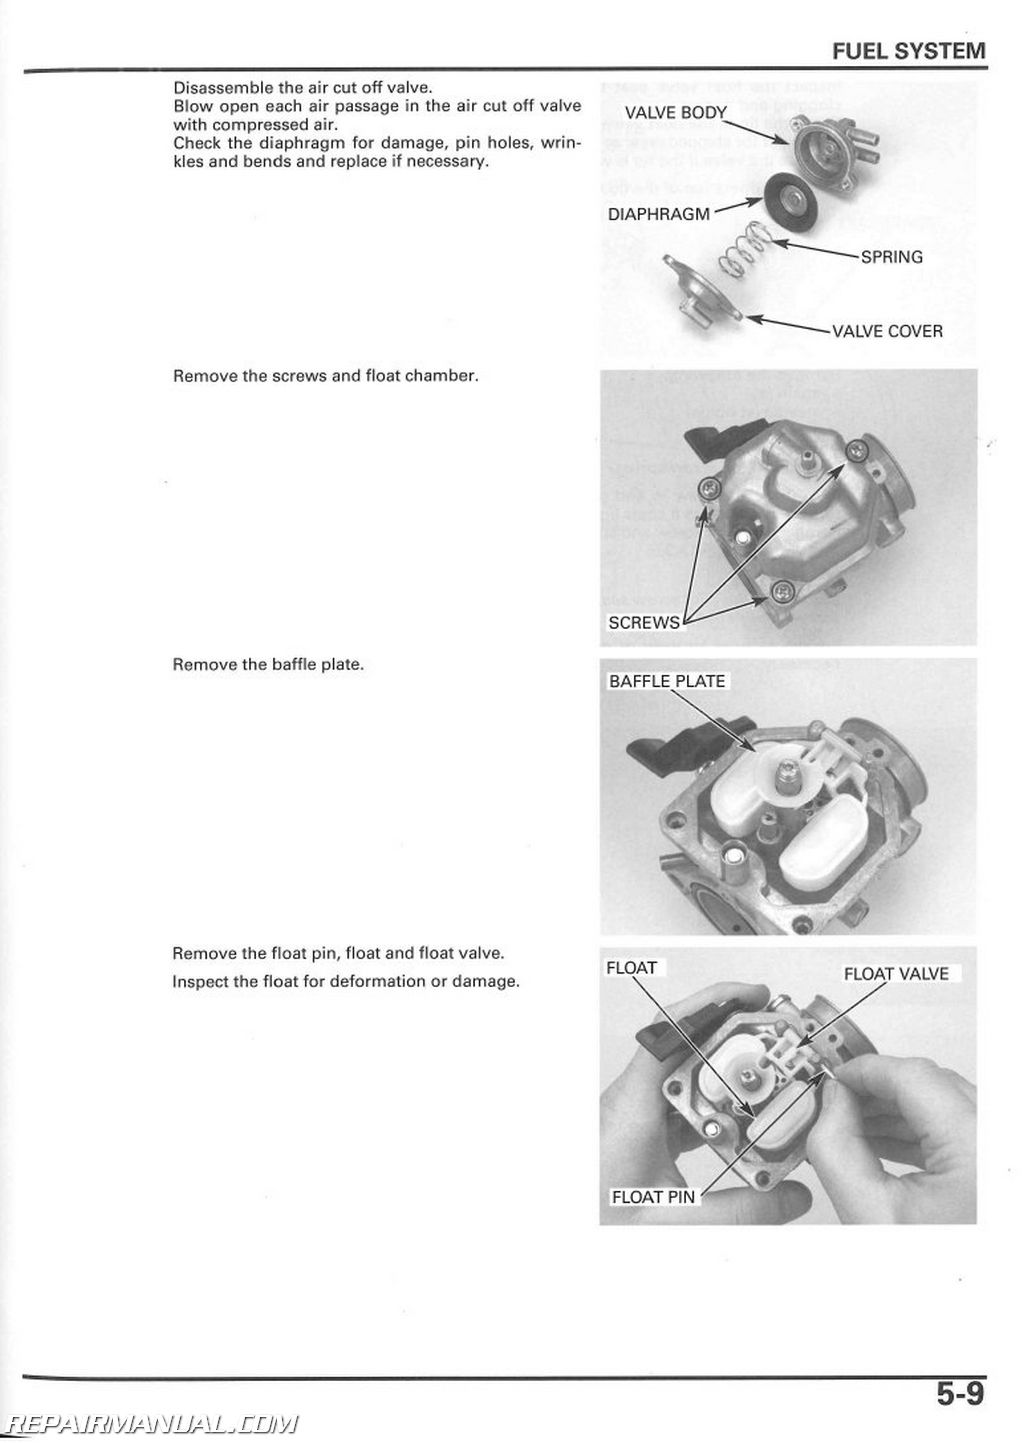 E3689 2003 Honda Trx250tm Service Manual Wiring Diagram Library